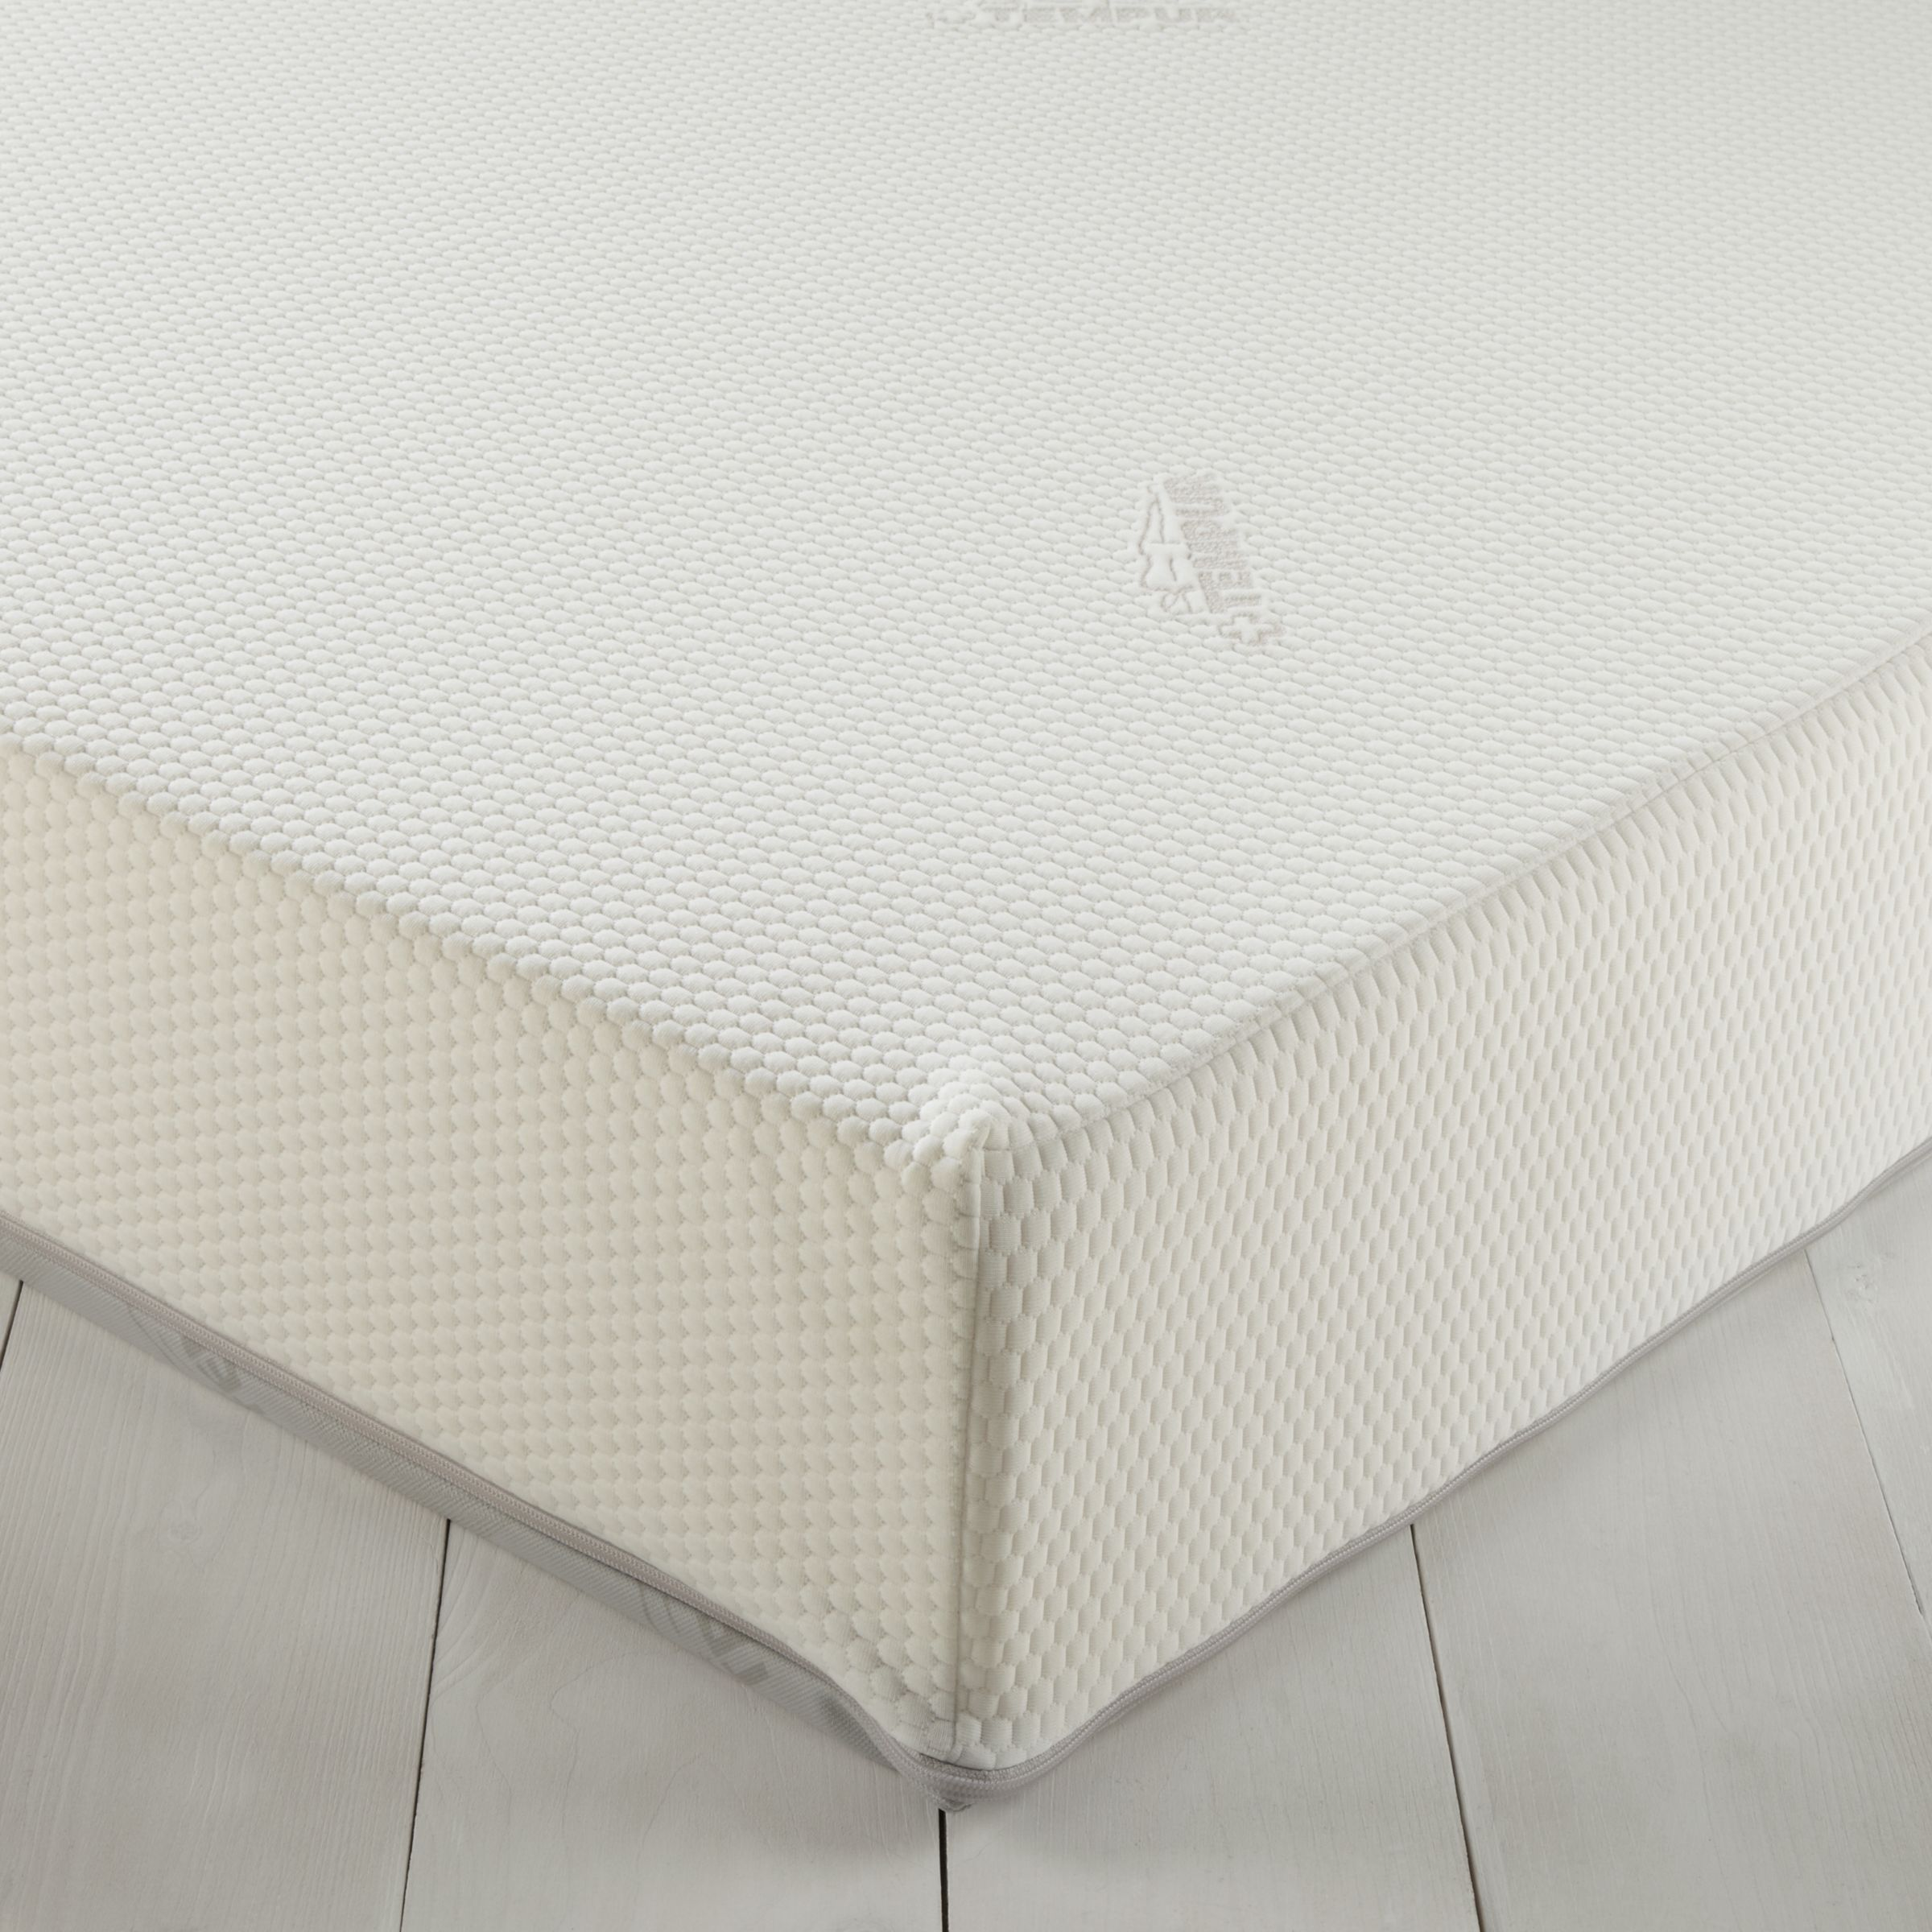 Tempur Sensation 19 Mattress, Kingsize